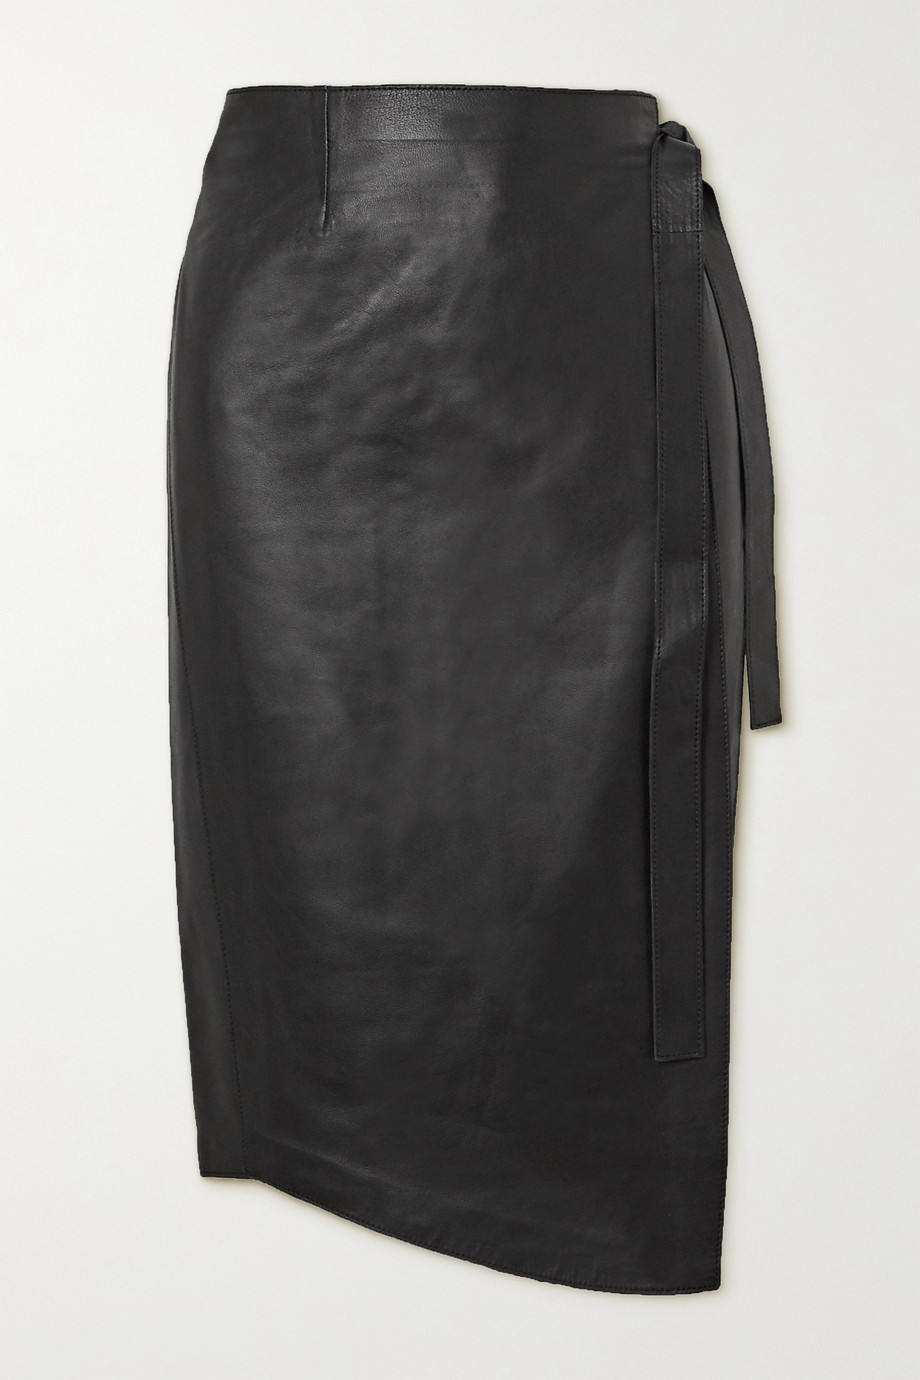 Envelope1976 + NET SUSTAIN Sarajevo leather wrap skirt